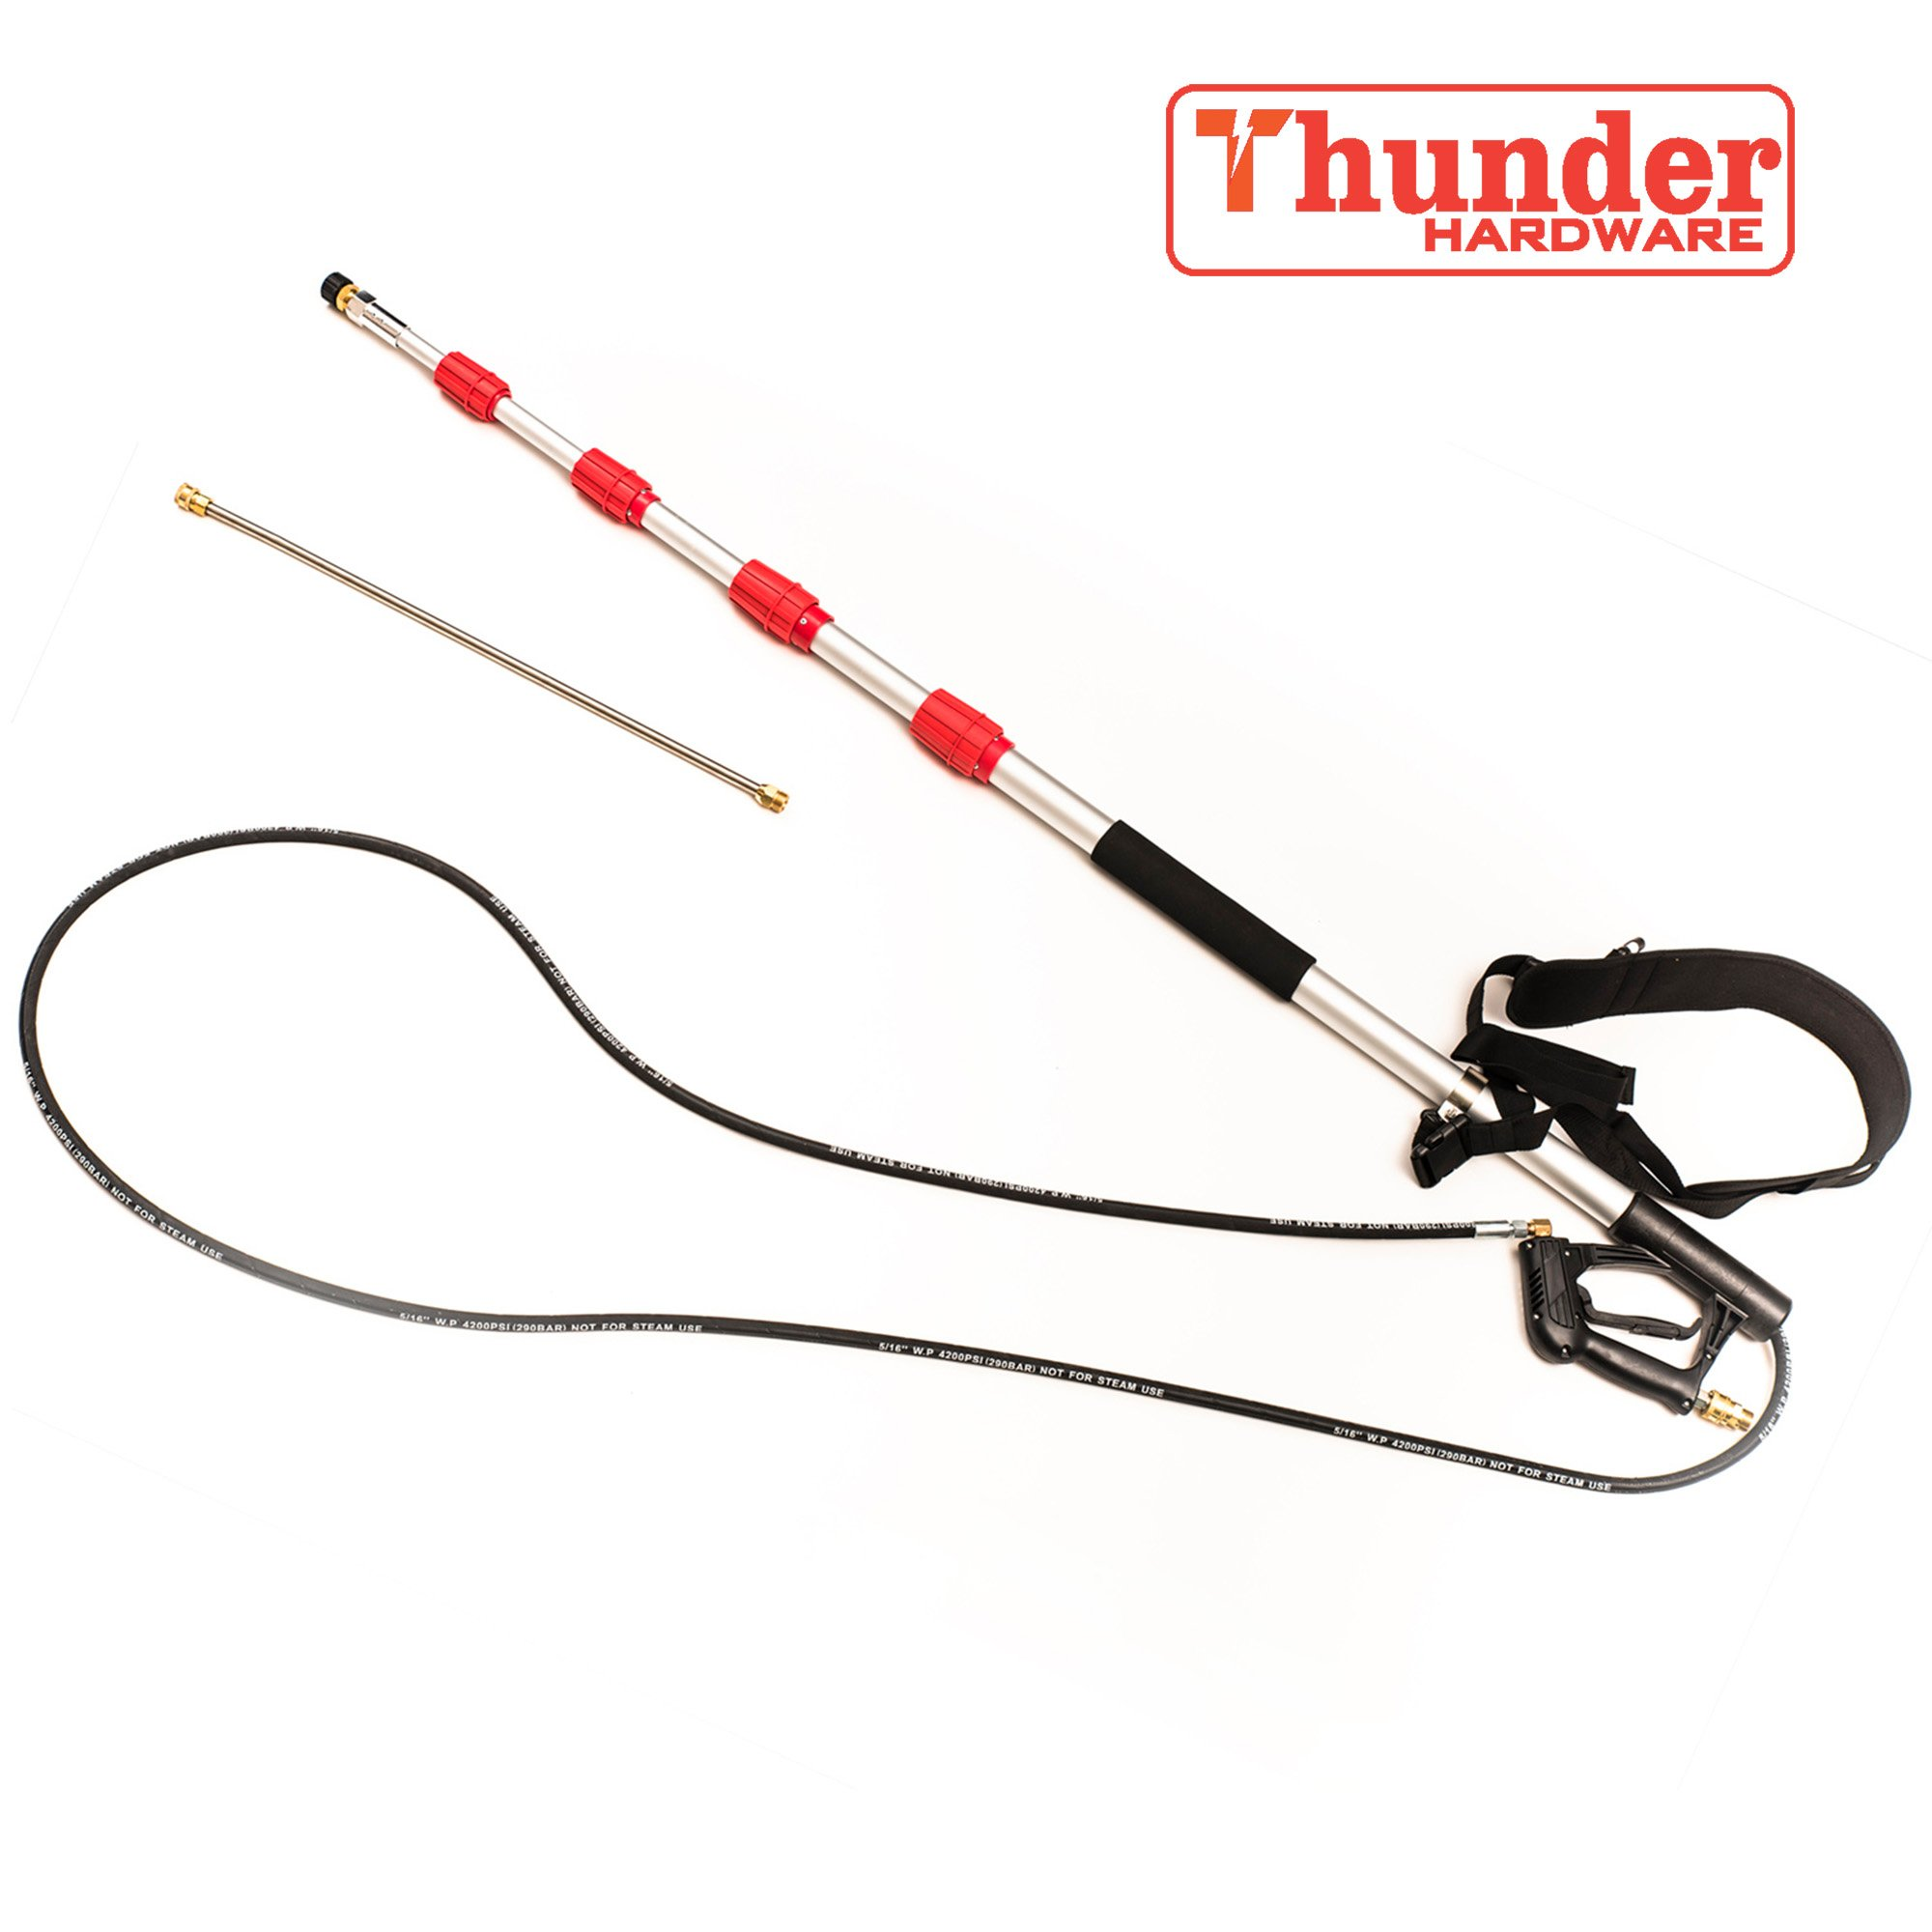 Thunder Hardware 4000 psi Commercial Grade Telescoping Spray Wand for Pressure Washers